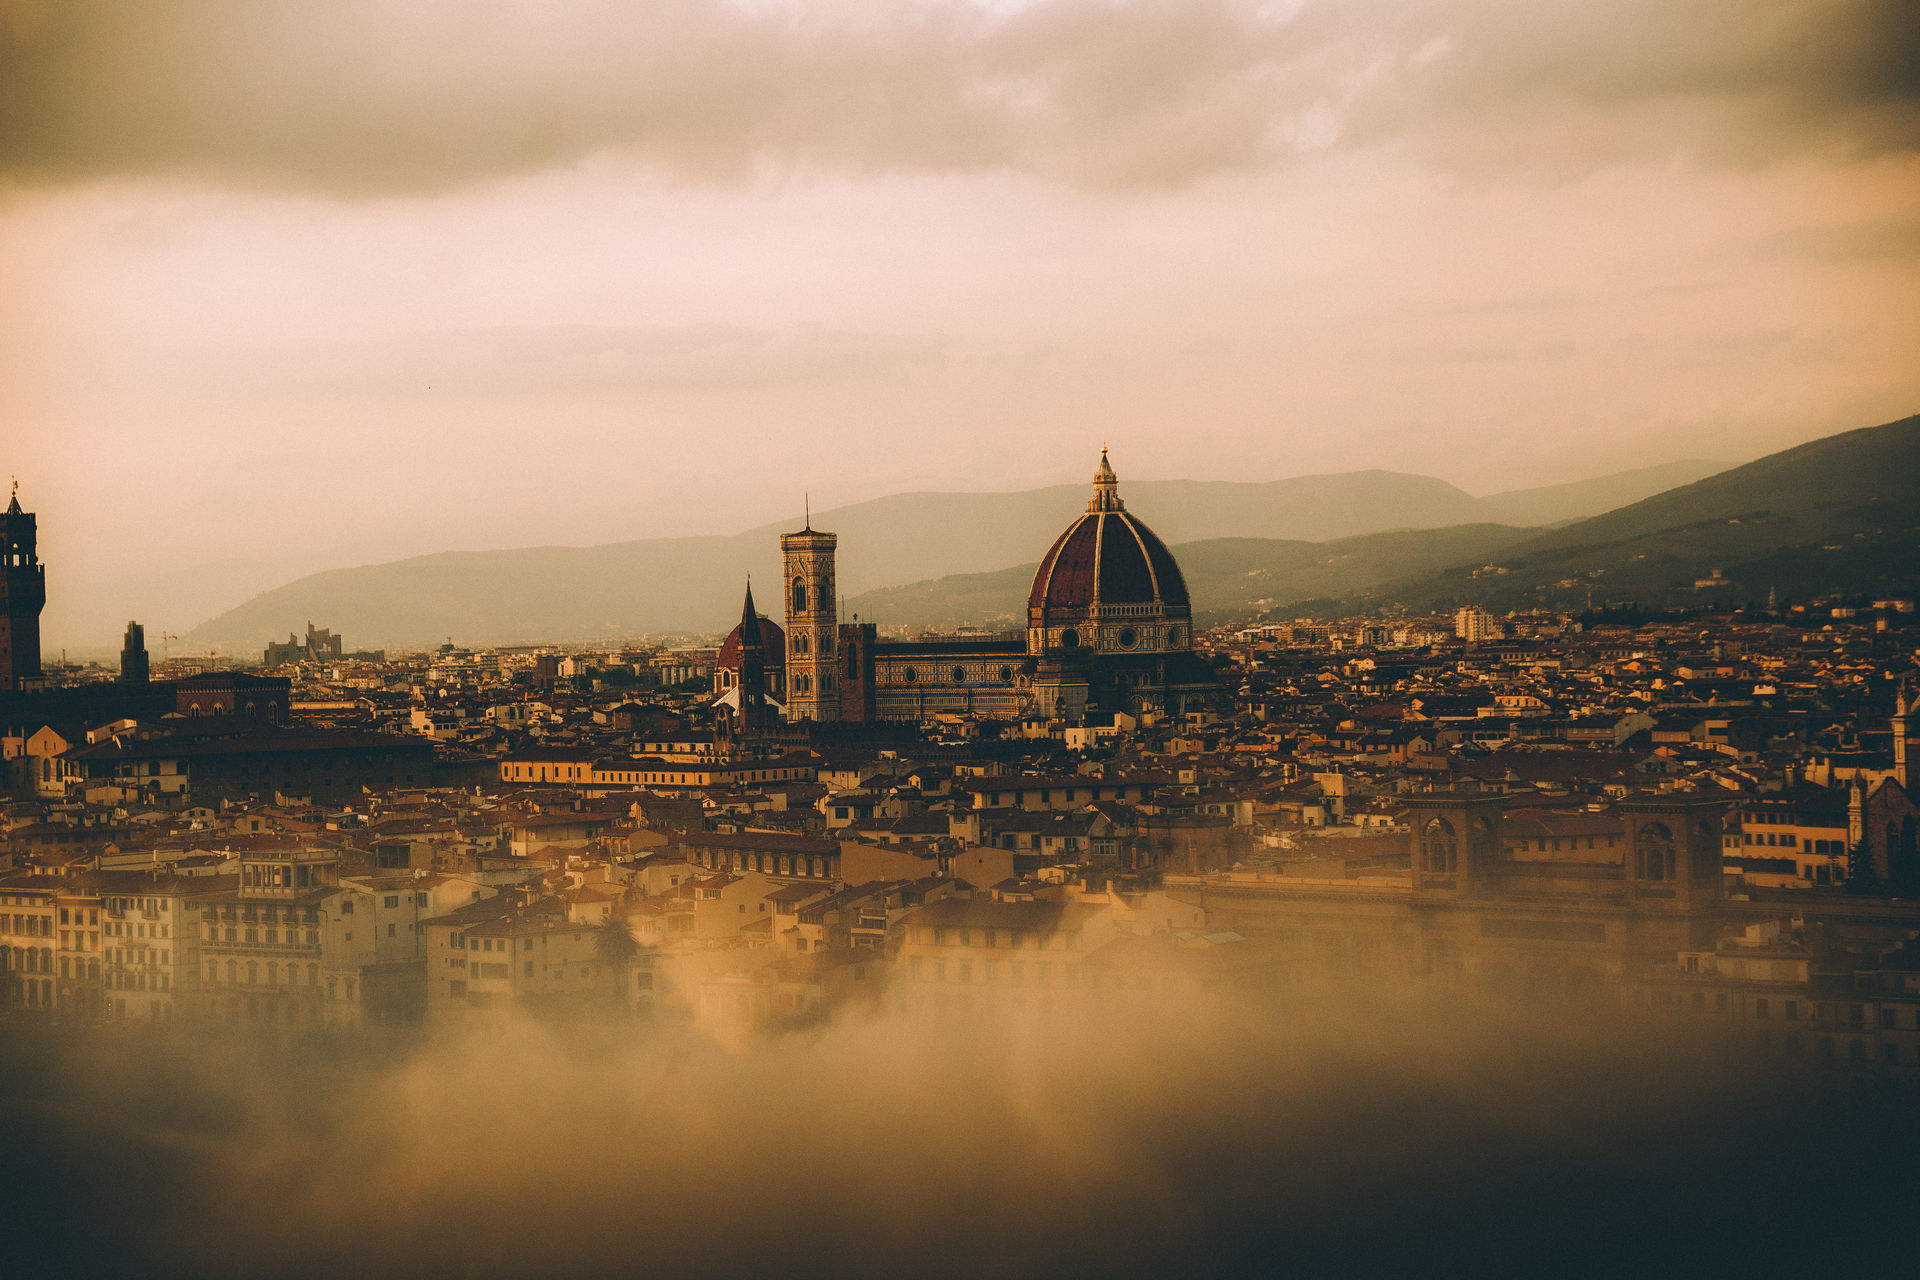 Cathedral EyeEm Best Shots Firenze Love Nature TheWeekOnEyeEM Architecture Cityscape italy landscape master_shots outdoors Place of worship travel destinations